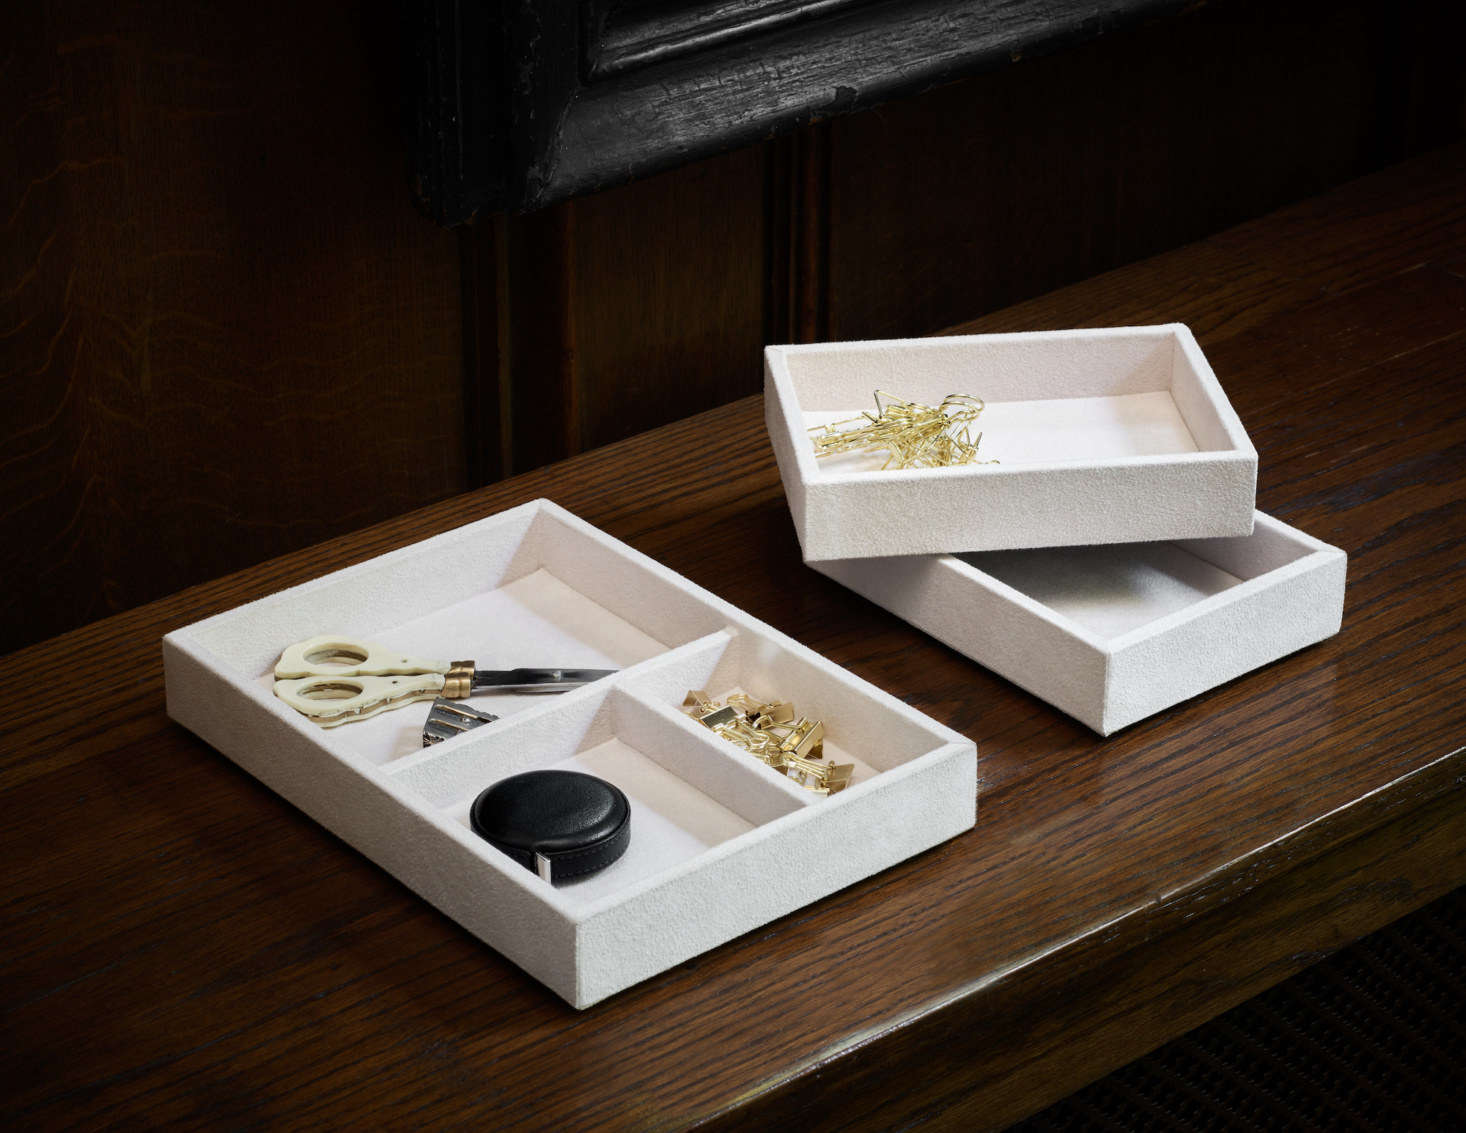 The Stackable Valet Tray is available in chalk or black; $40 for the smaller size and $60 for the larger.